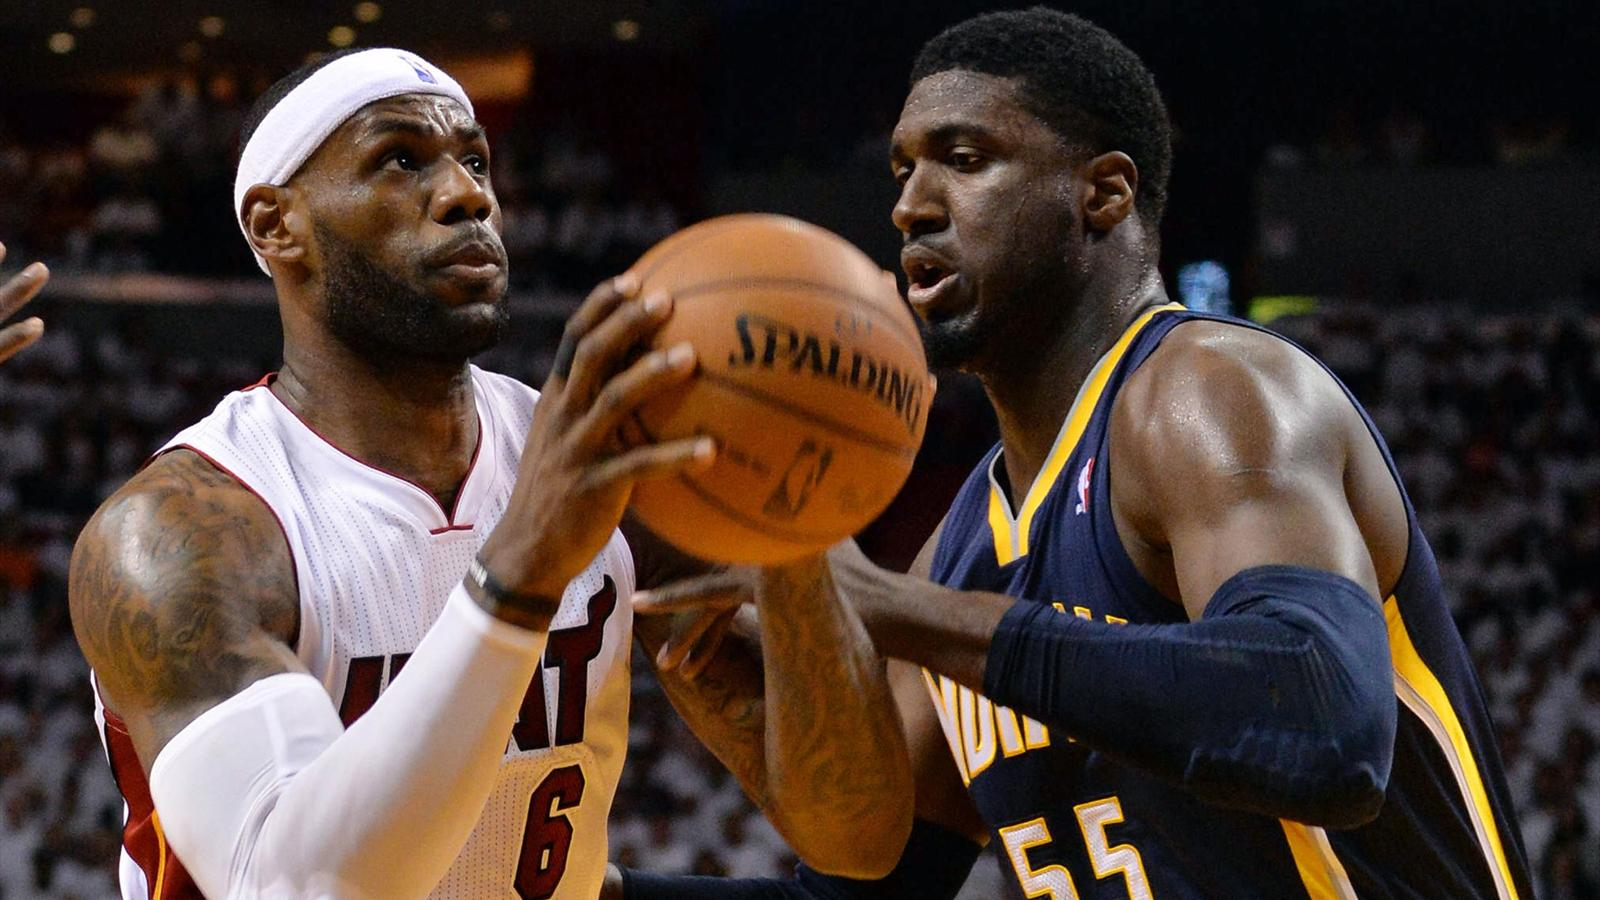 Miami Heat forward LeBron James (6) drives to the basket against Indiana Pacers center Roy Hibbert (55) (Reuters)